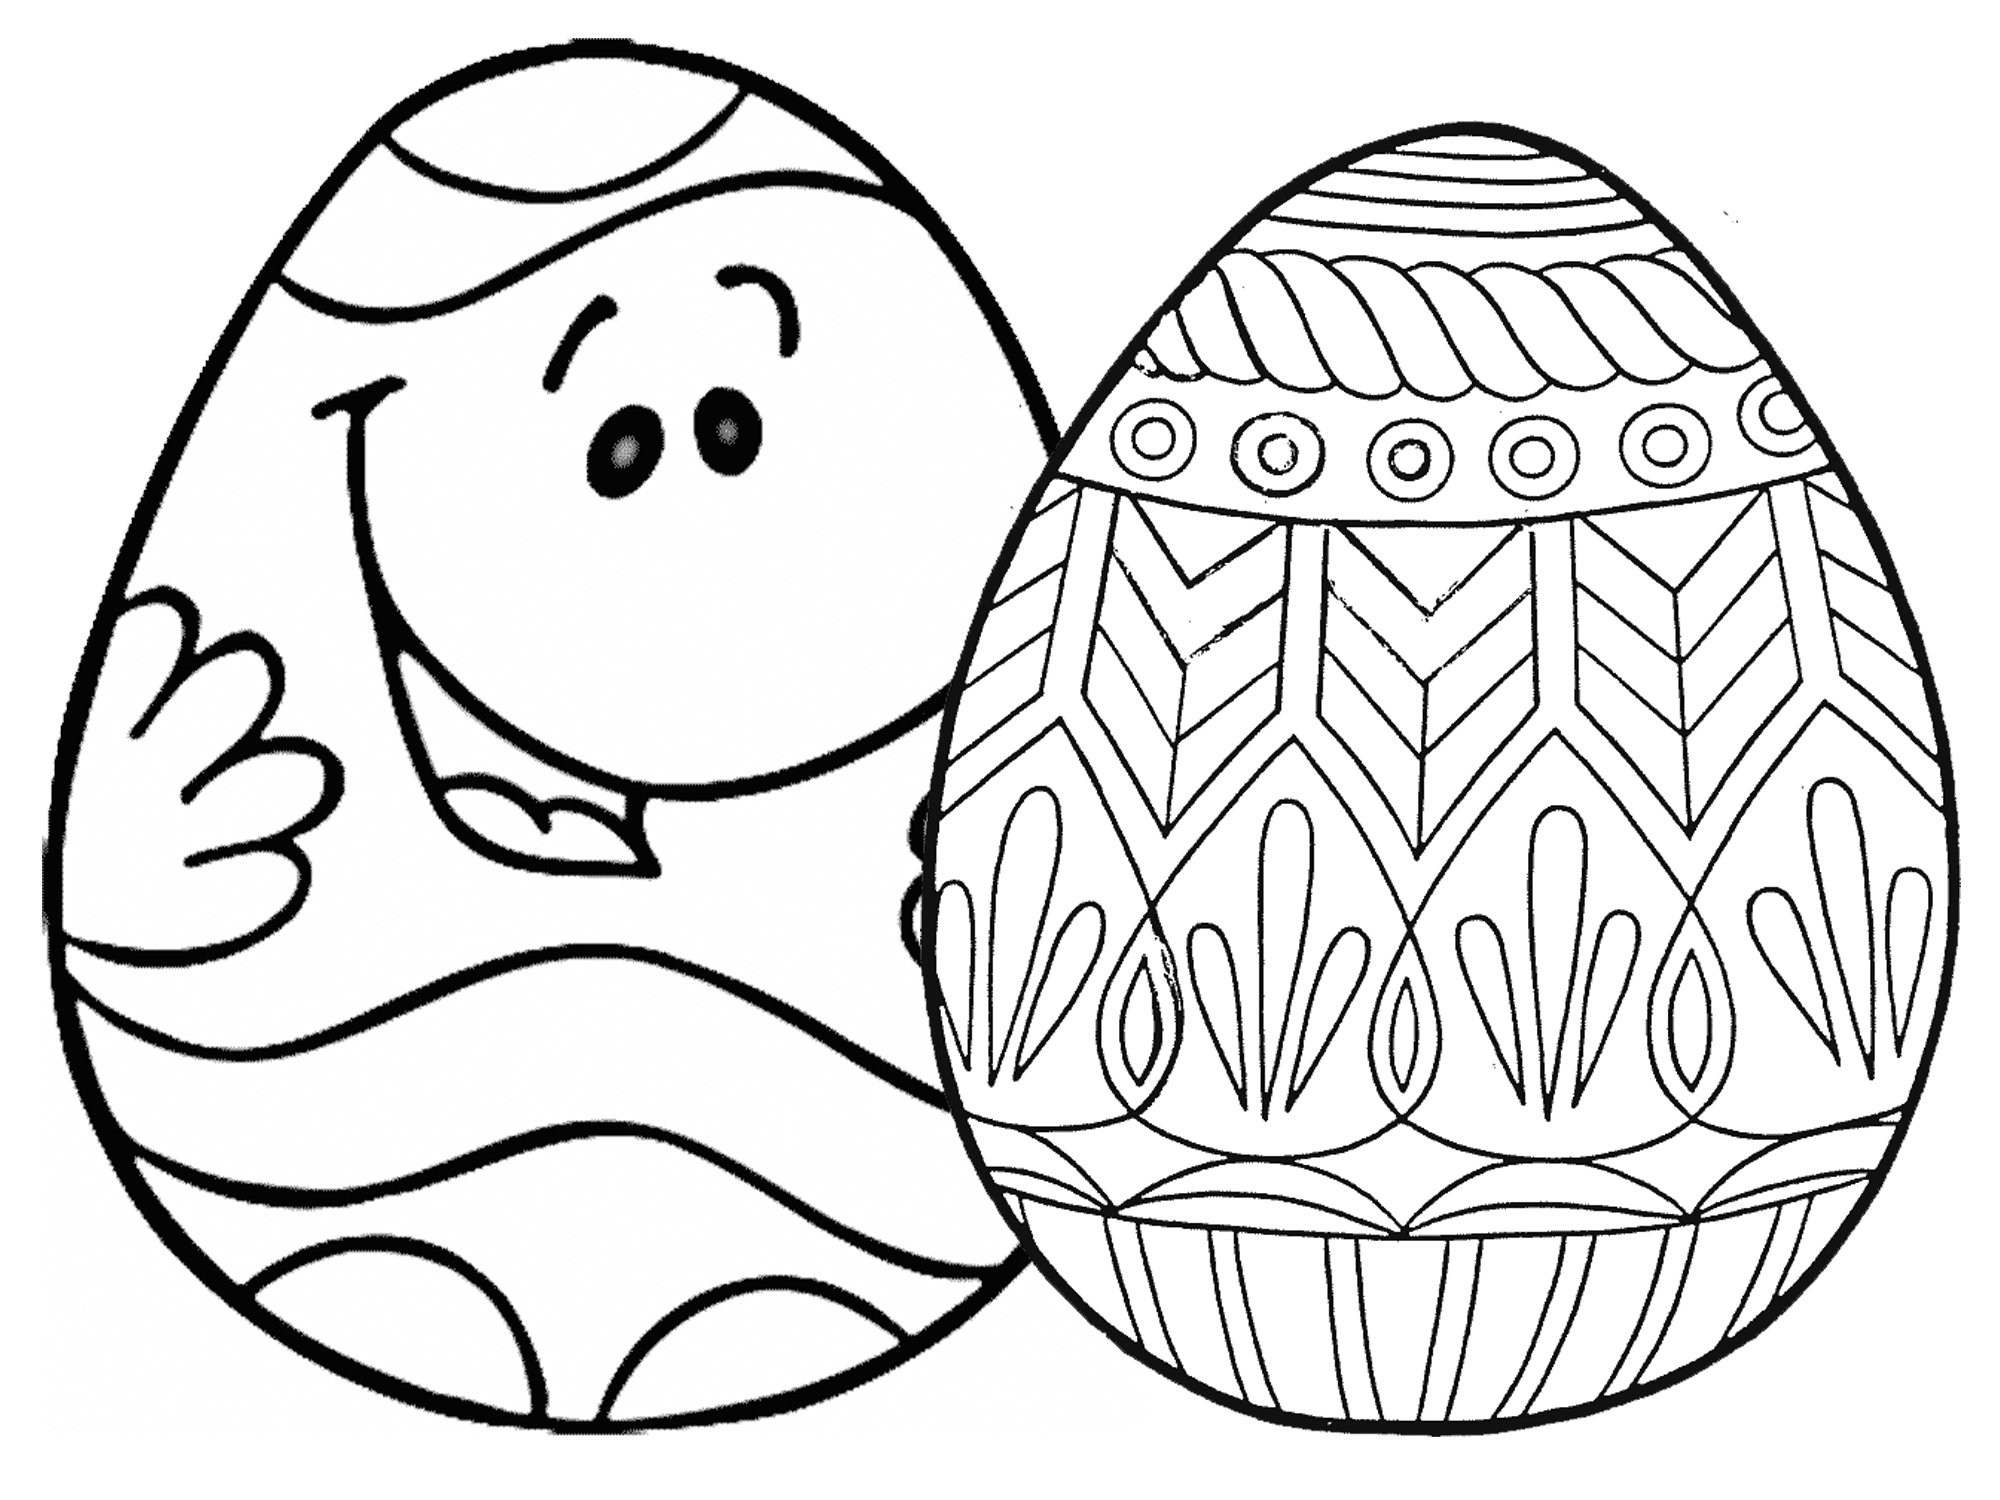 easter egg color page easter coloring pages for adults best coloring pages for color page easter egg